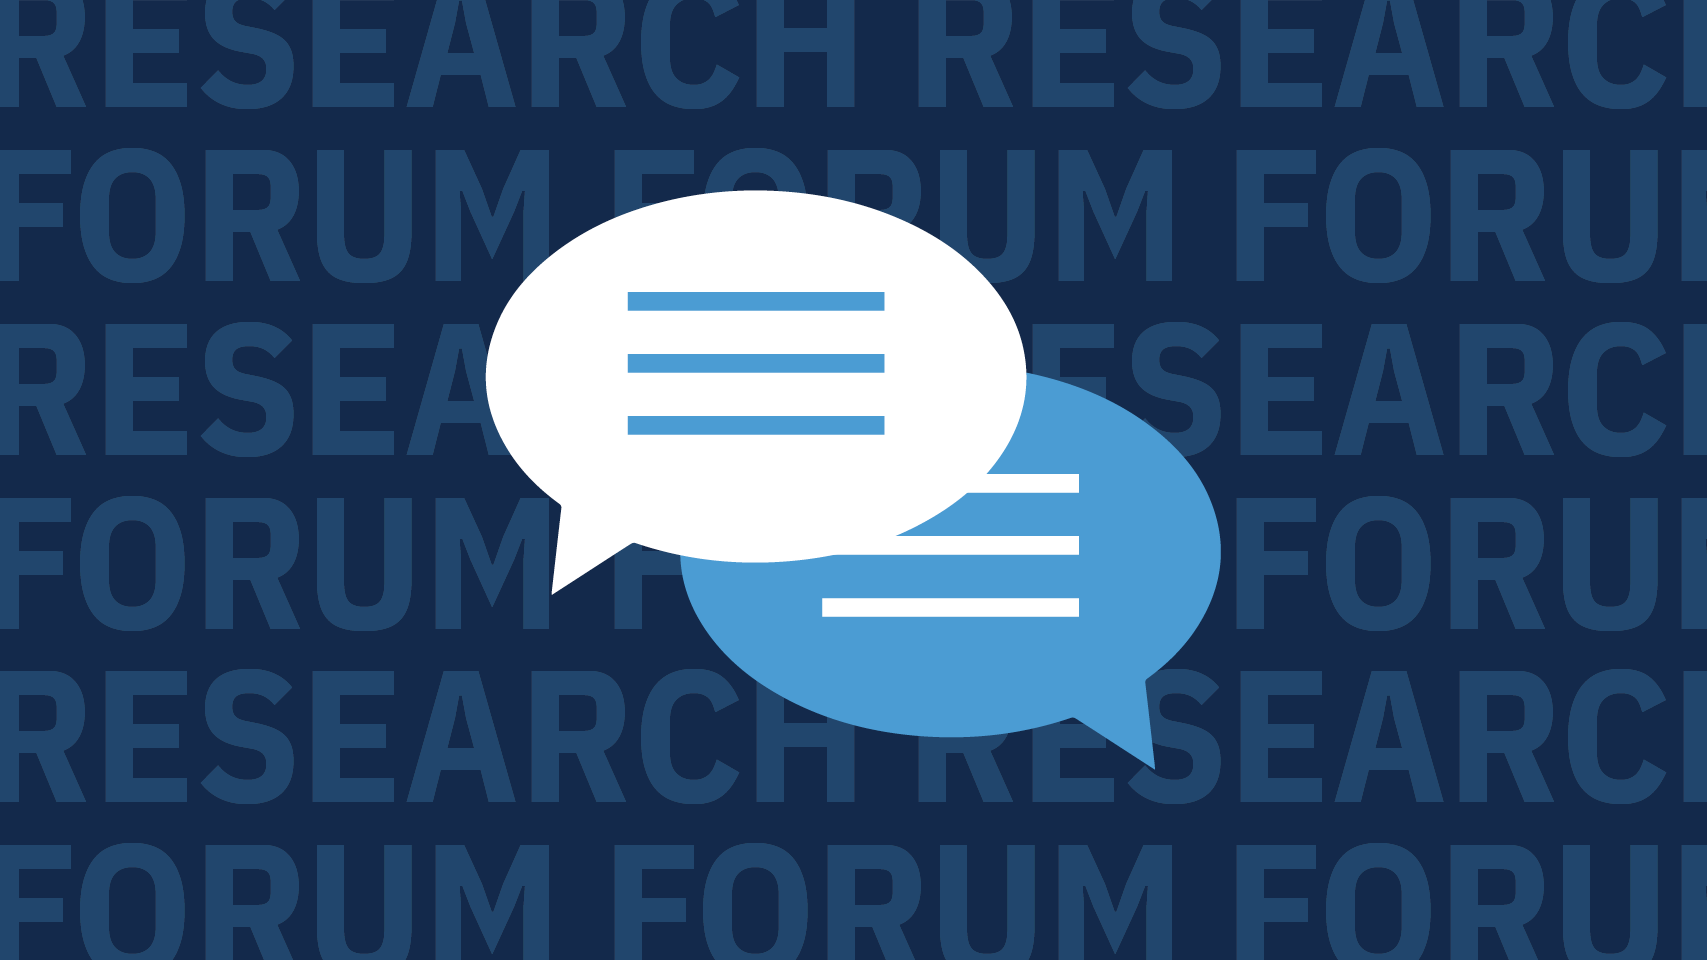 Wilson Library Research Forum 2019